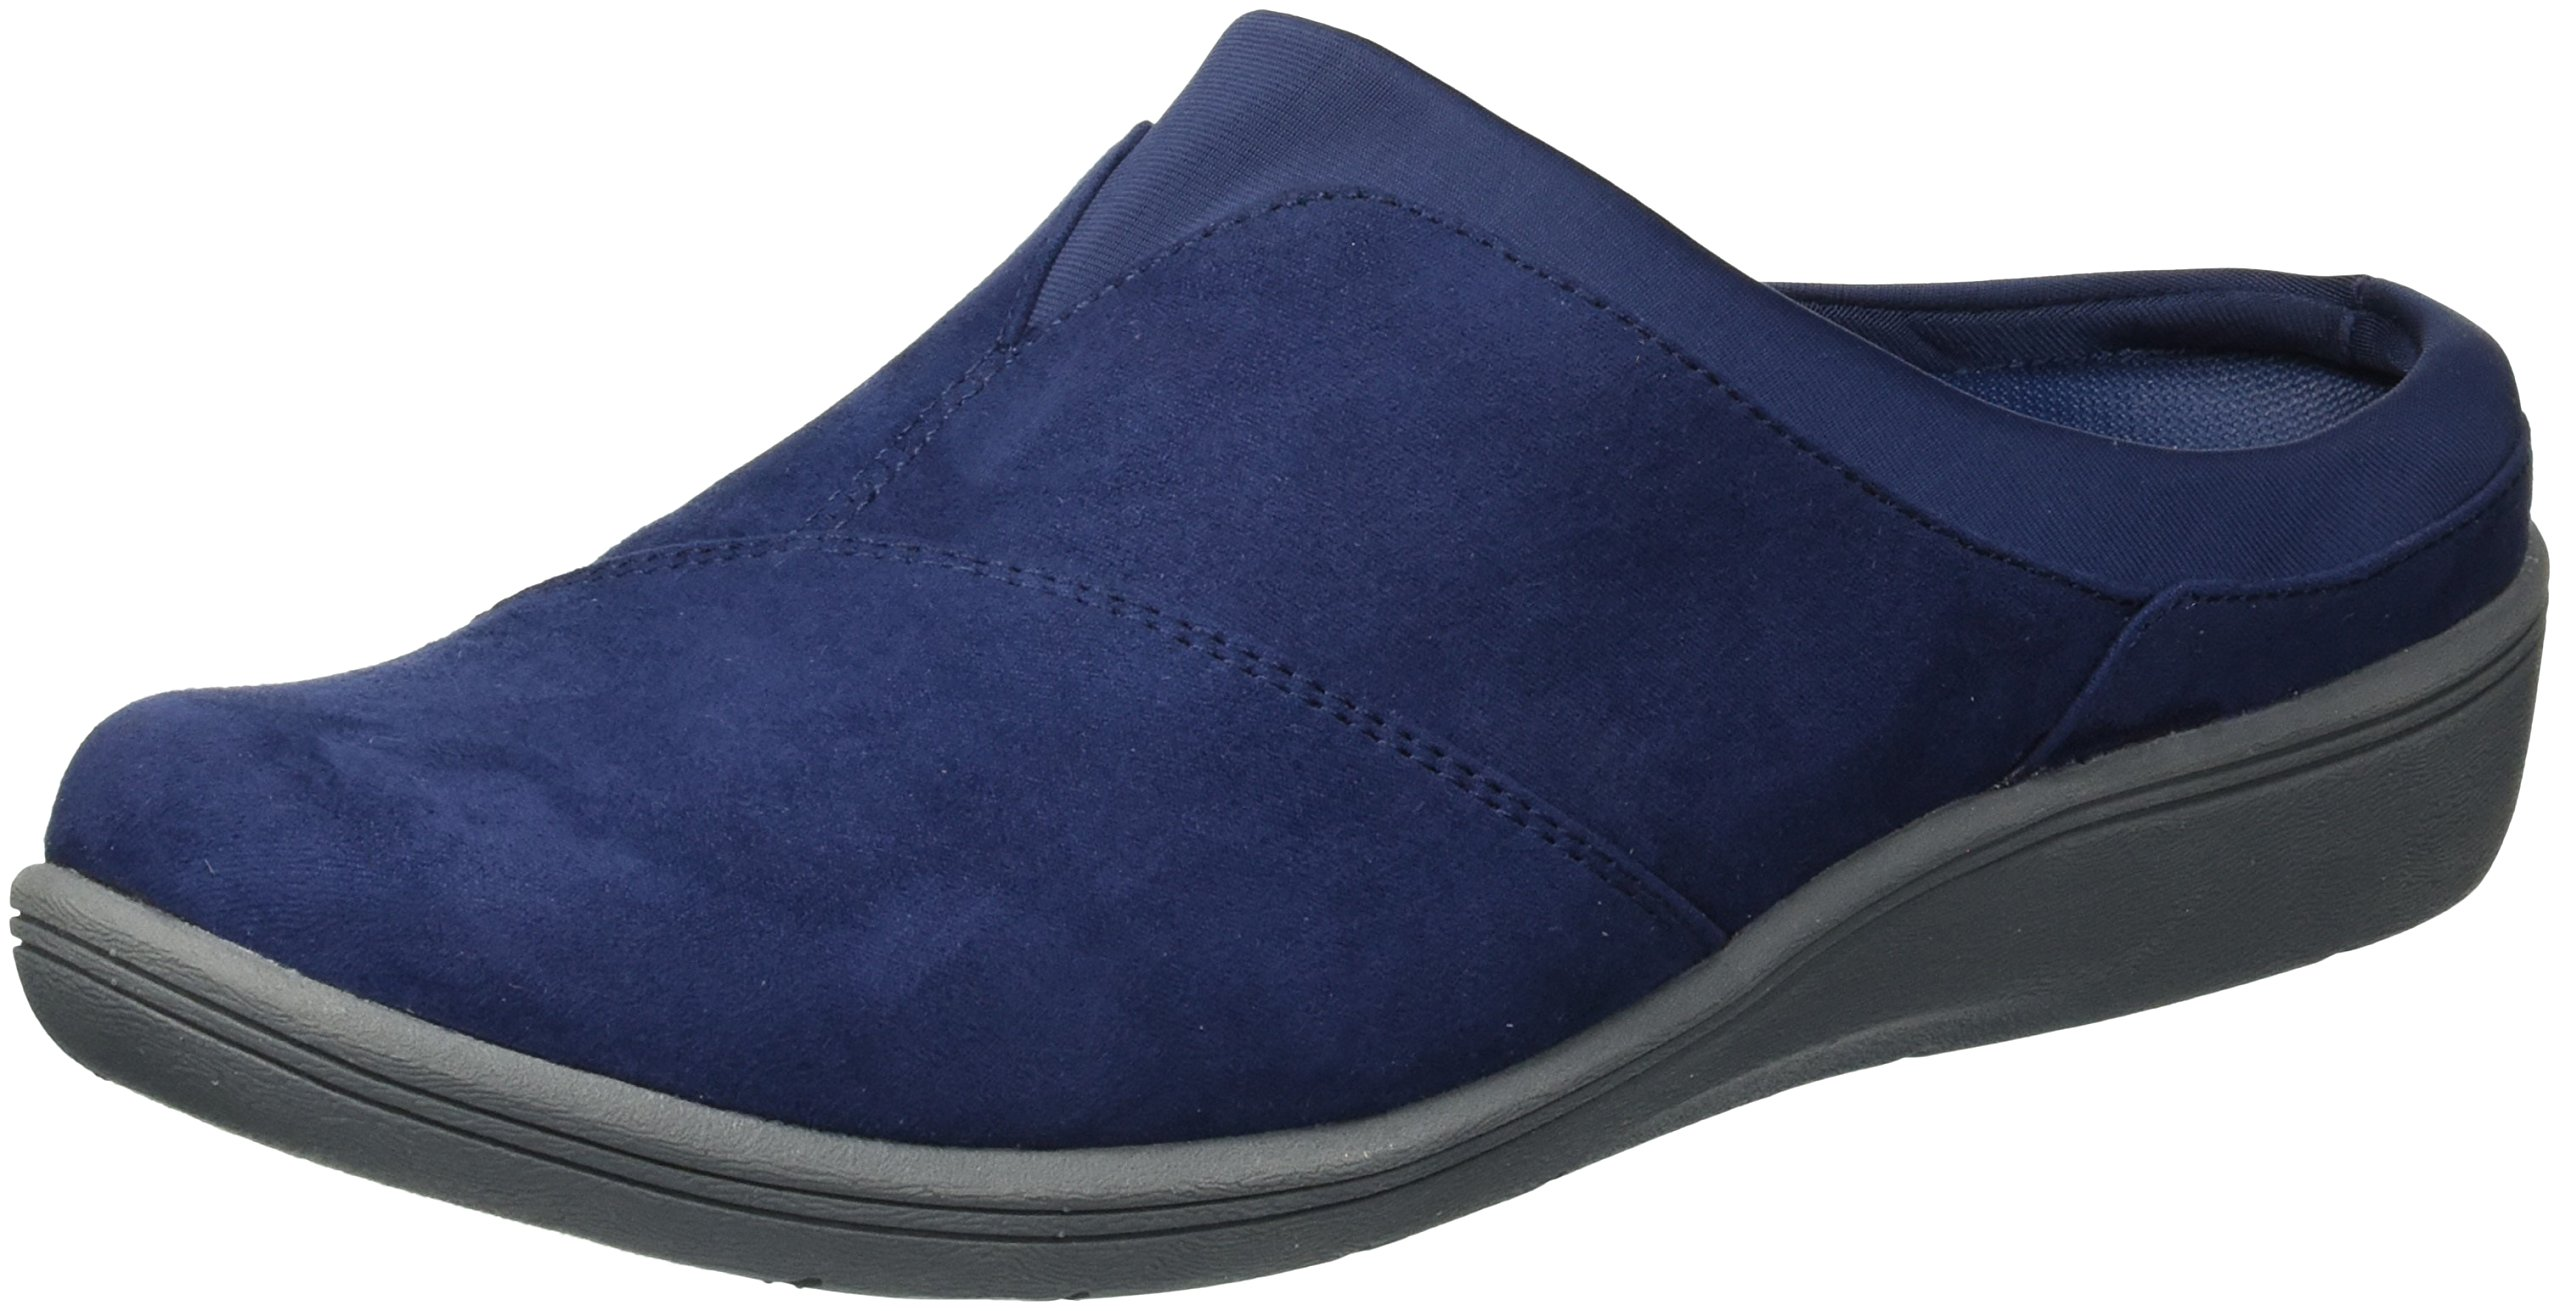 Copper Fit Women's Restore Mule Sneaker, Navy, 7 M US